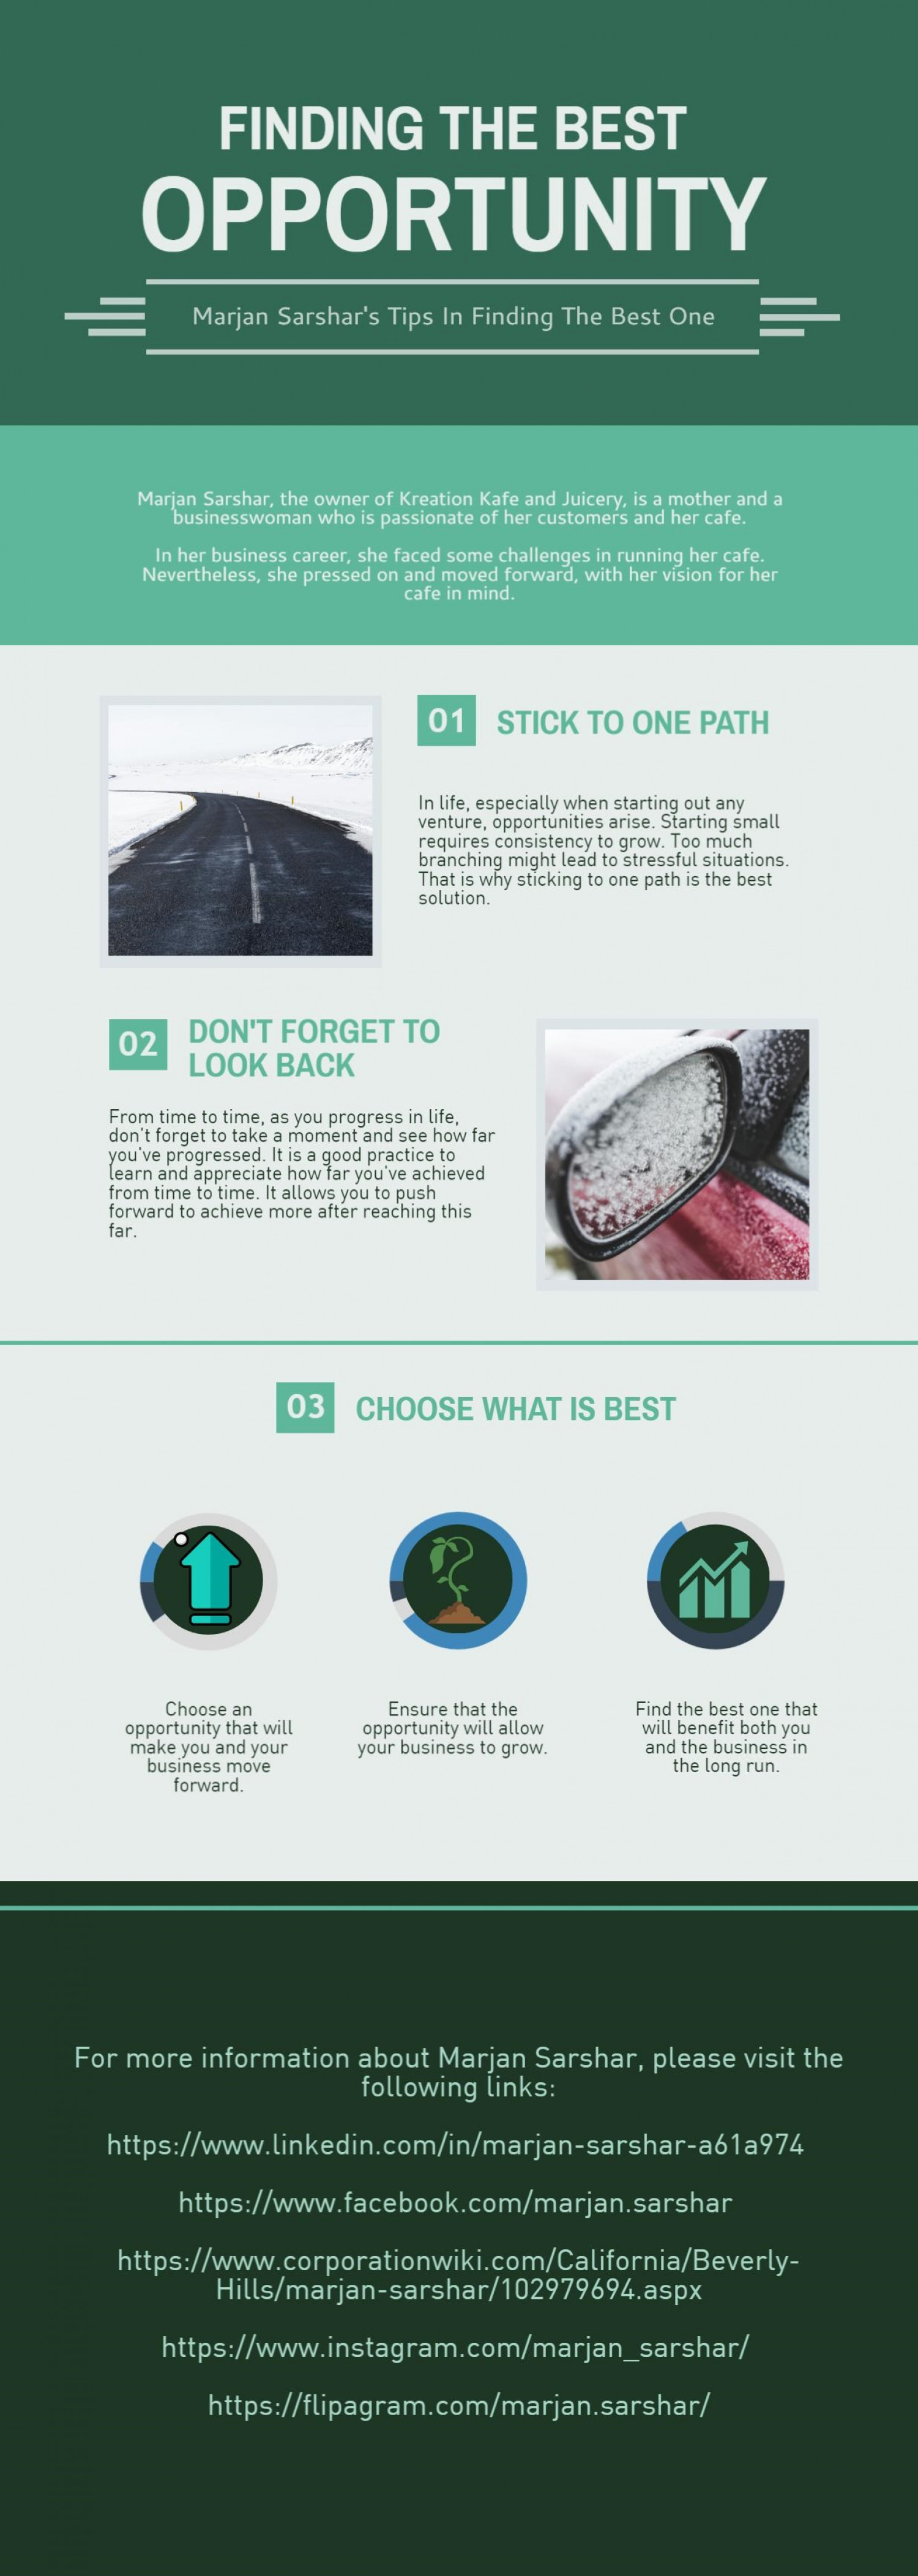 Finding the Best Opportunity: Marjan Sarshar's Tips Infographic